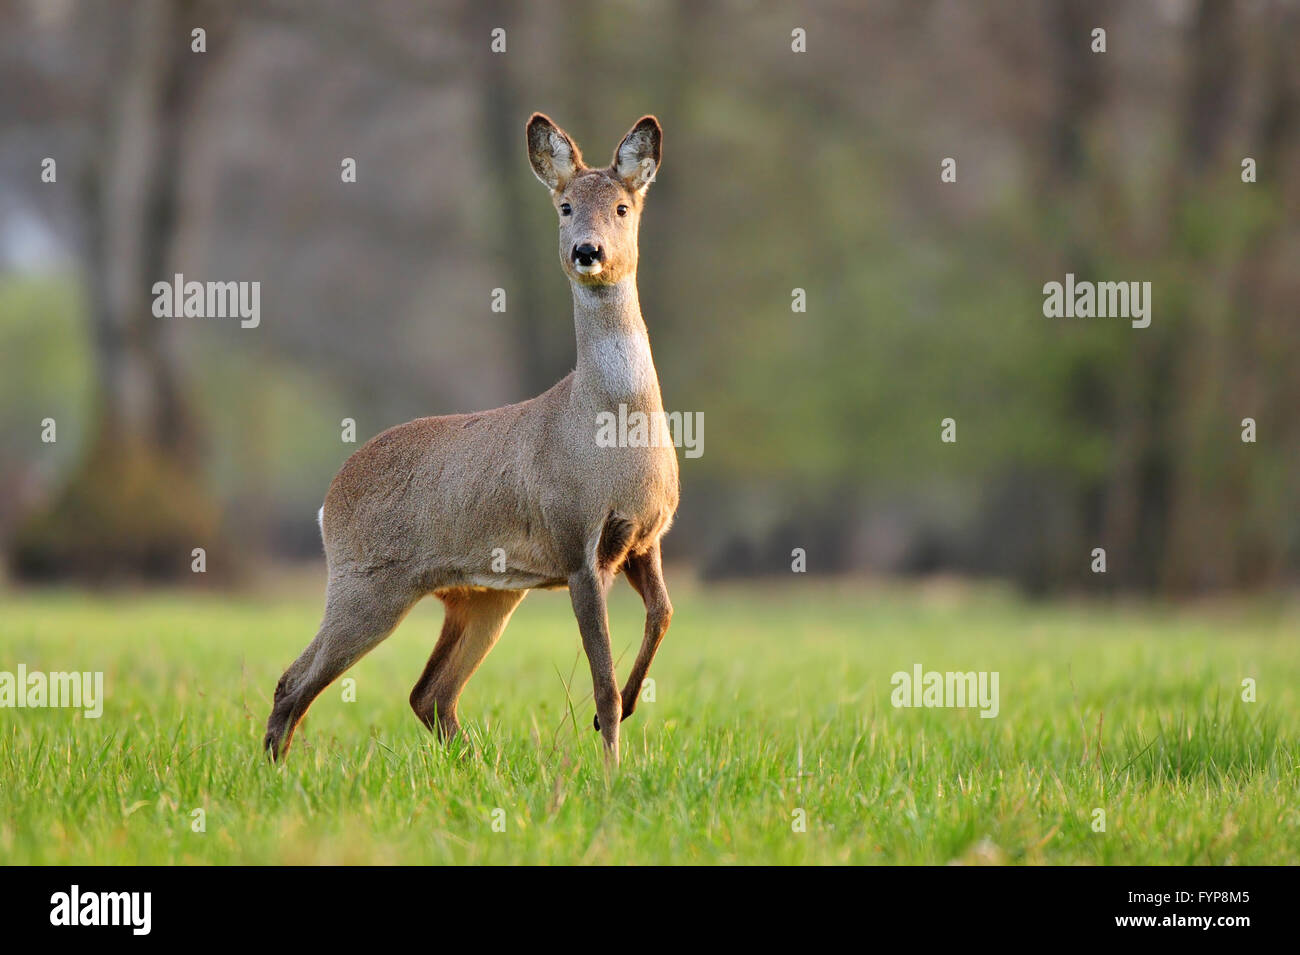 Photo of wild roe deer in a field Stock Photo